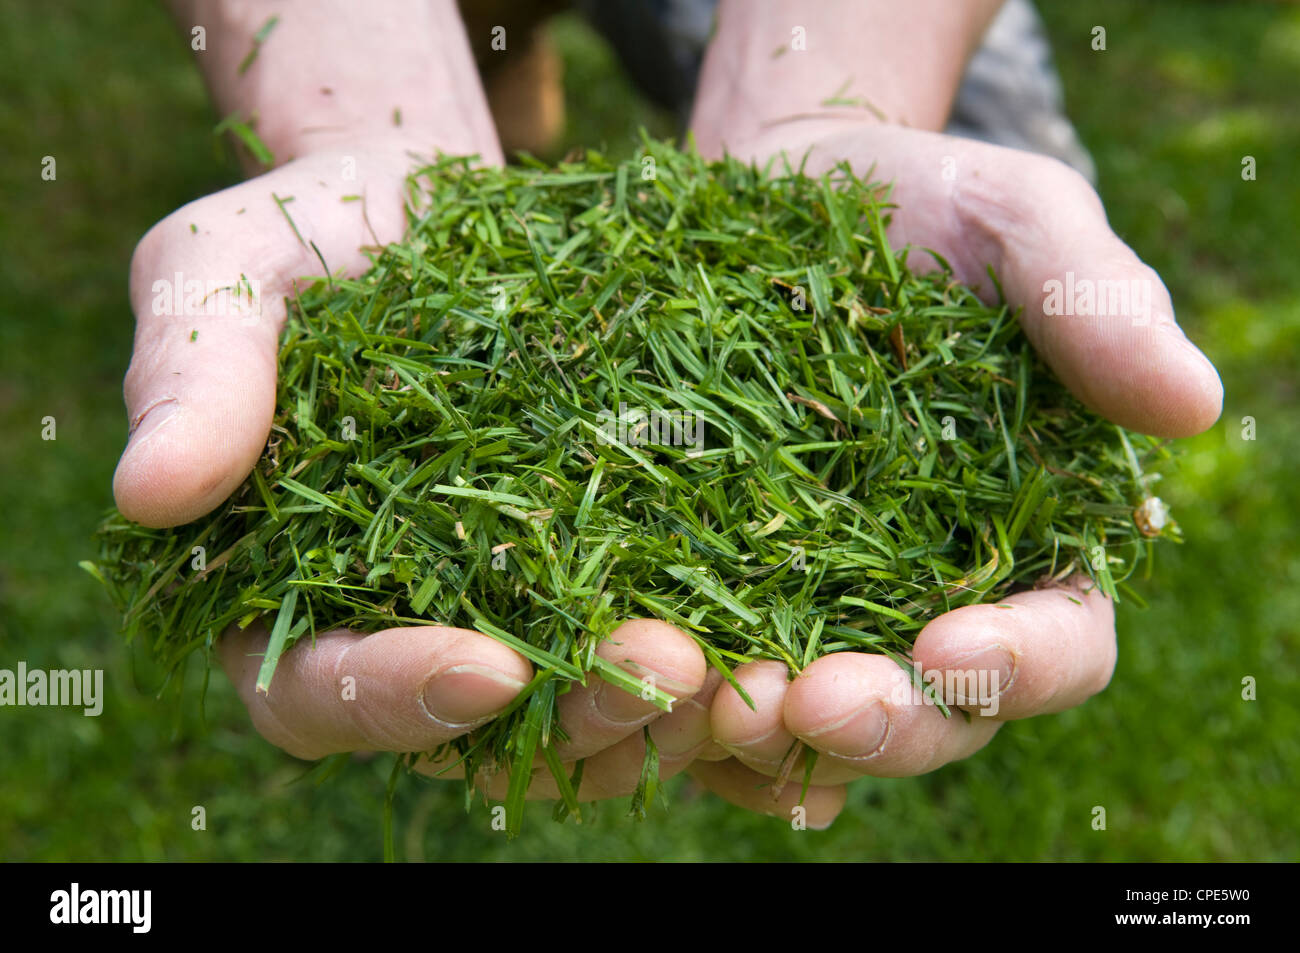 Close up of Caucasian mans hands holding freshly cut grass cuttings - Stock Image